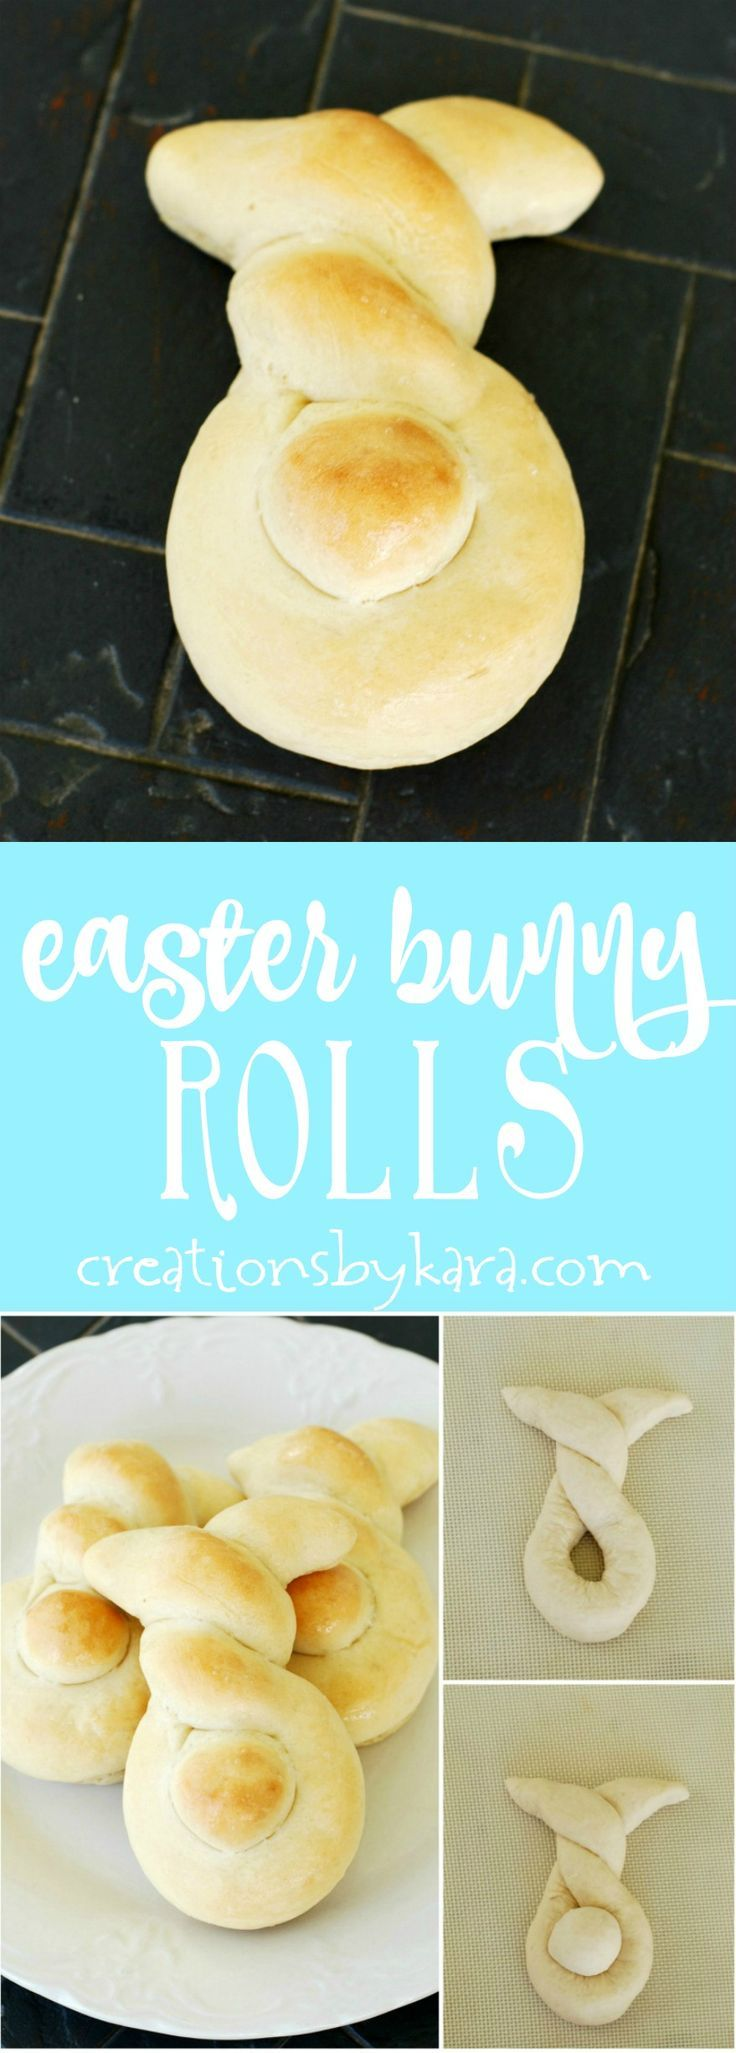 Make Easter dinner more fun with these cute Easter Bunny Rolls. They are perfect for Easter brunch too! via http://creationsbykara.com